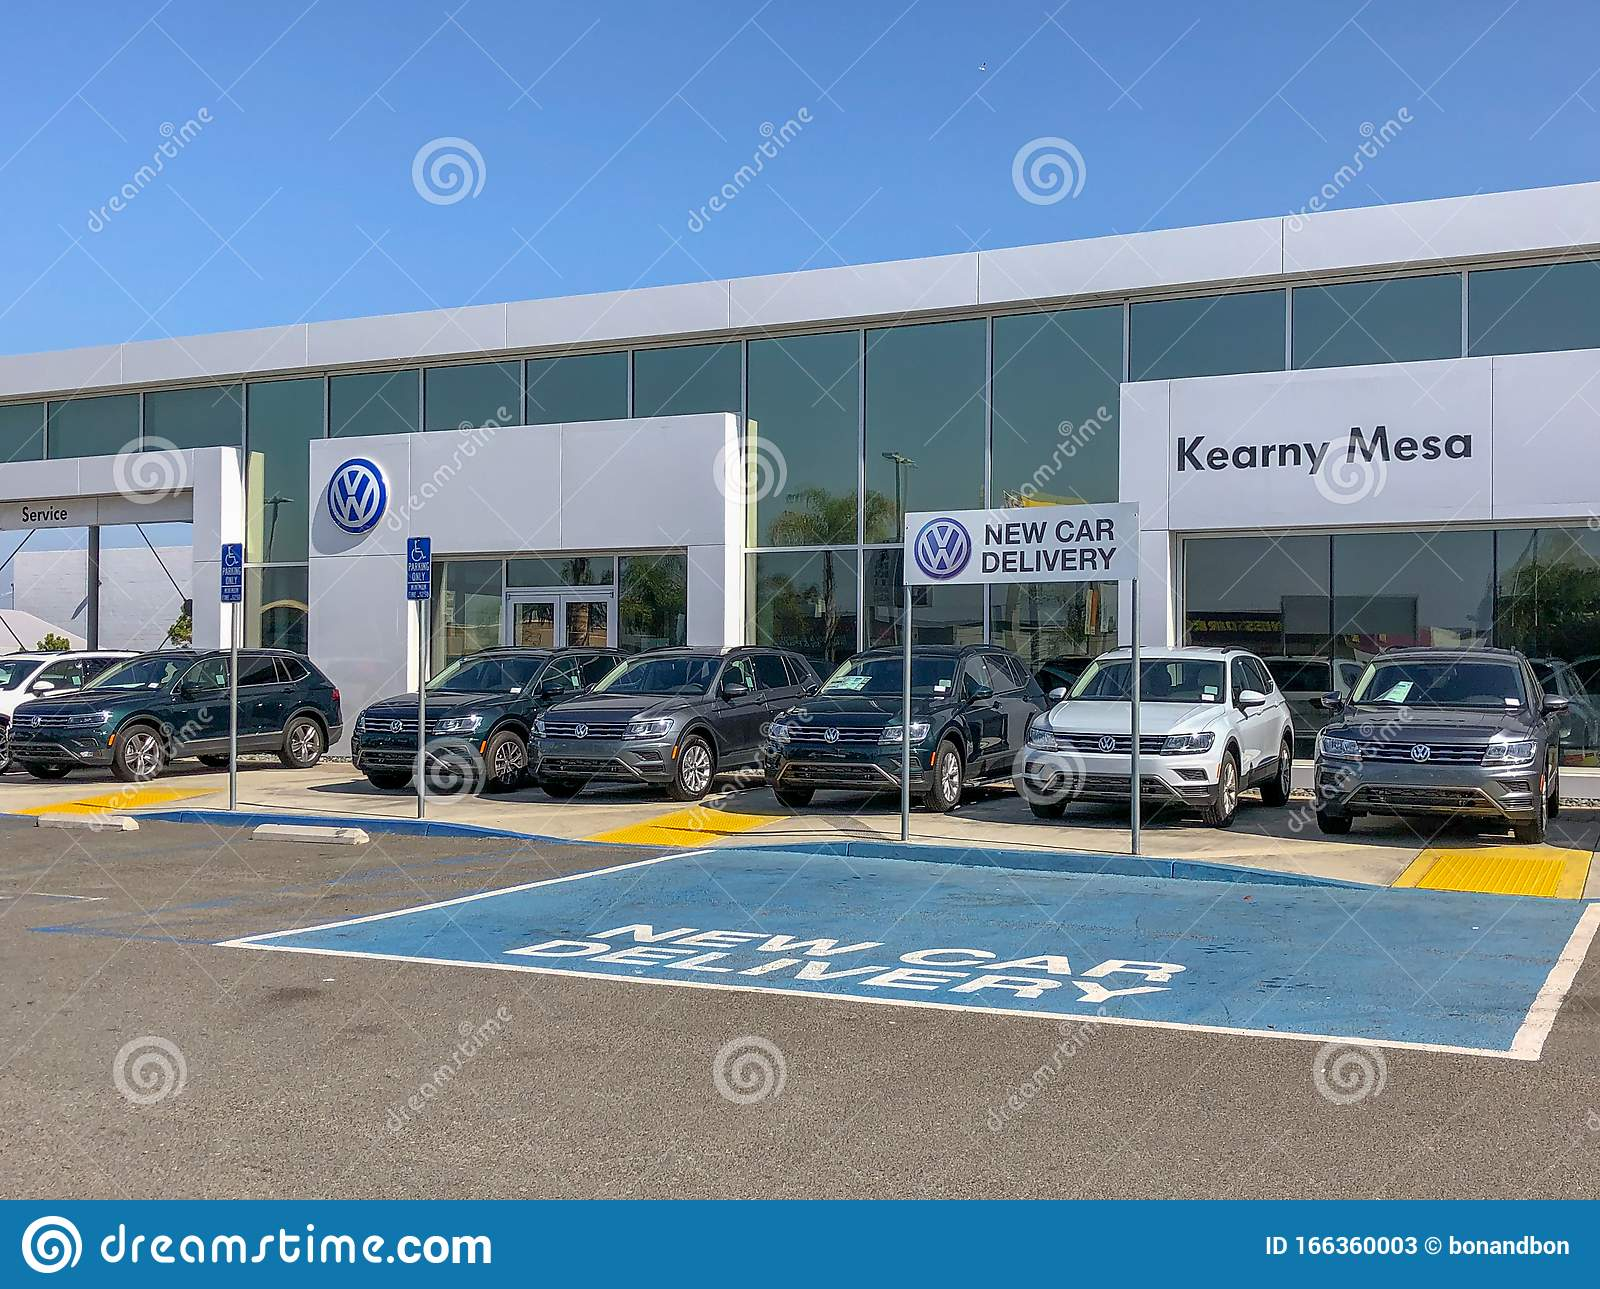 volkswagen group dealership and service in san diego editorial stock photo image of brand automobile 166360003 dreamstime com